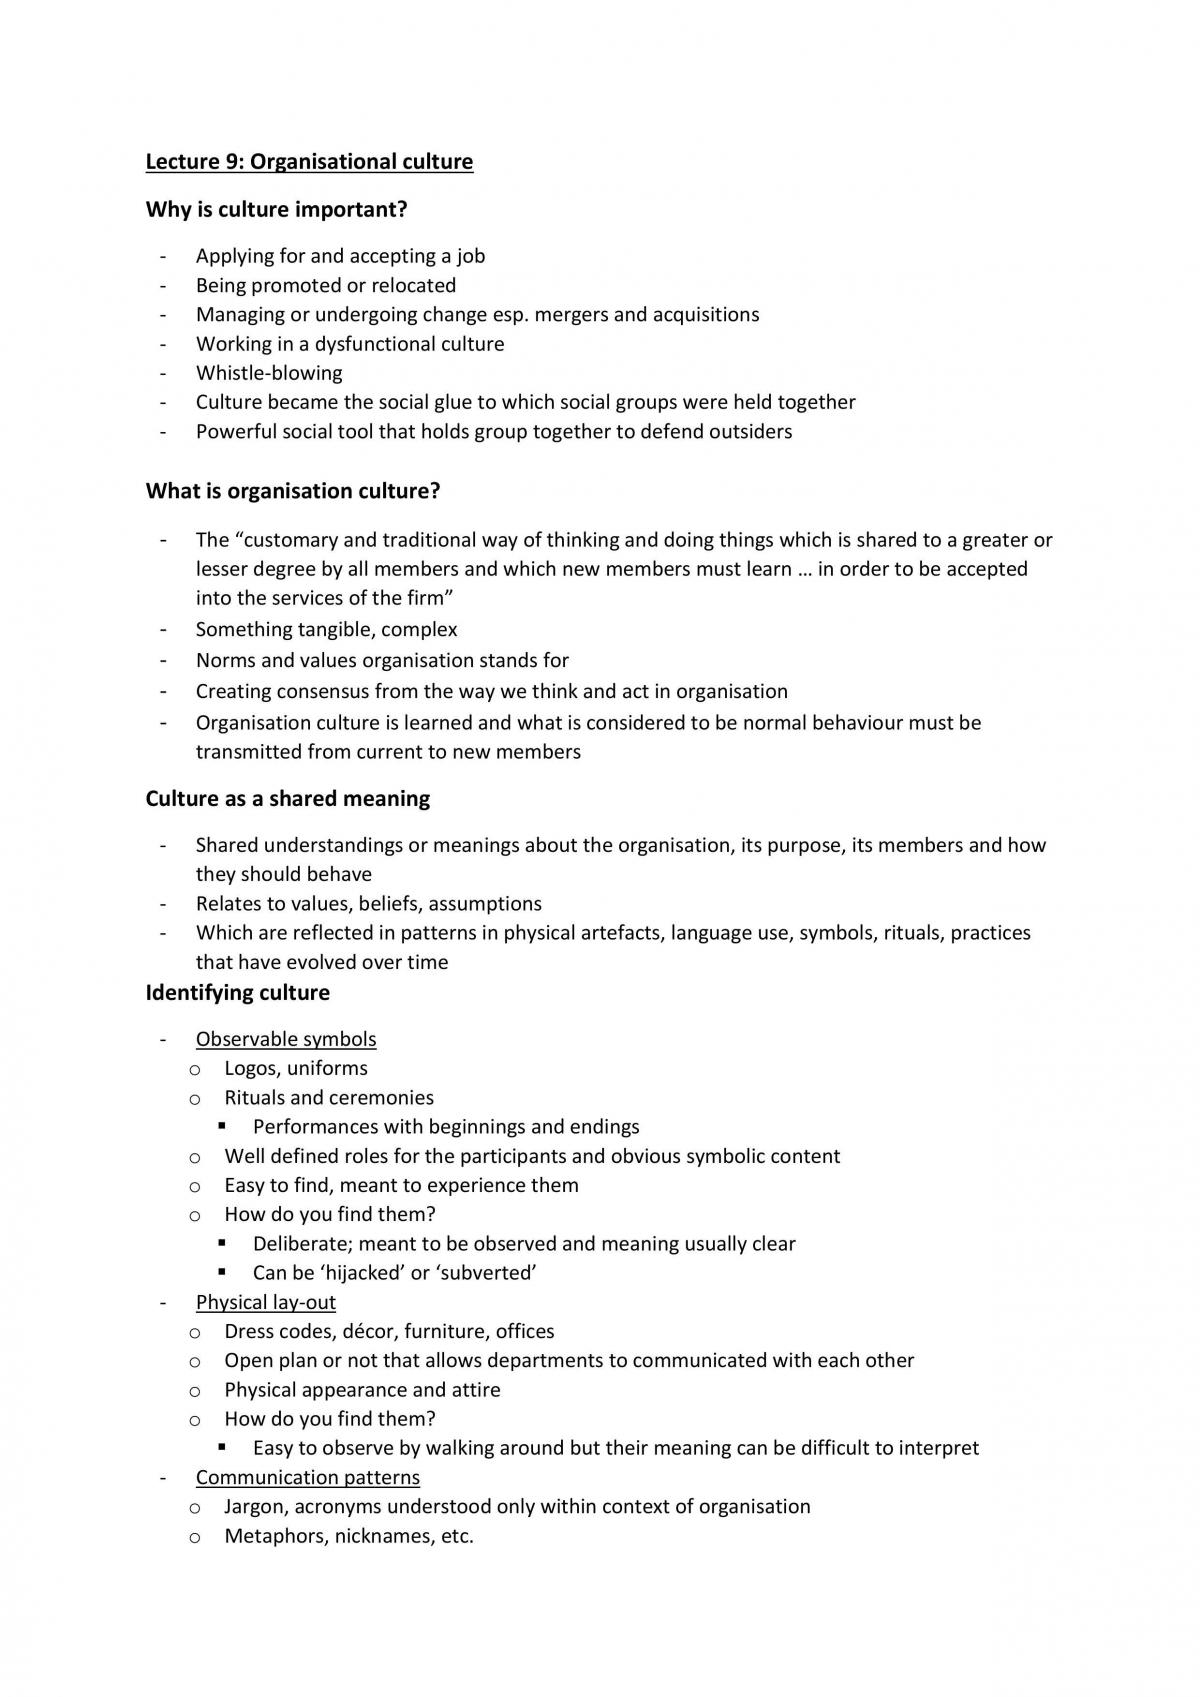 Complete MGMT 20001 Notes - Page 36